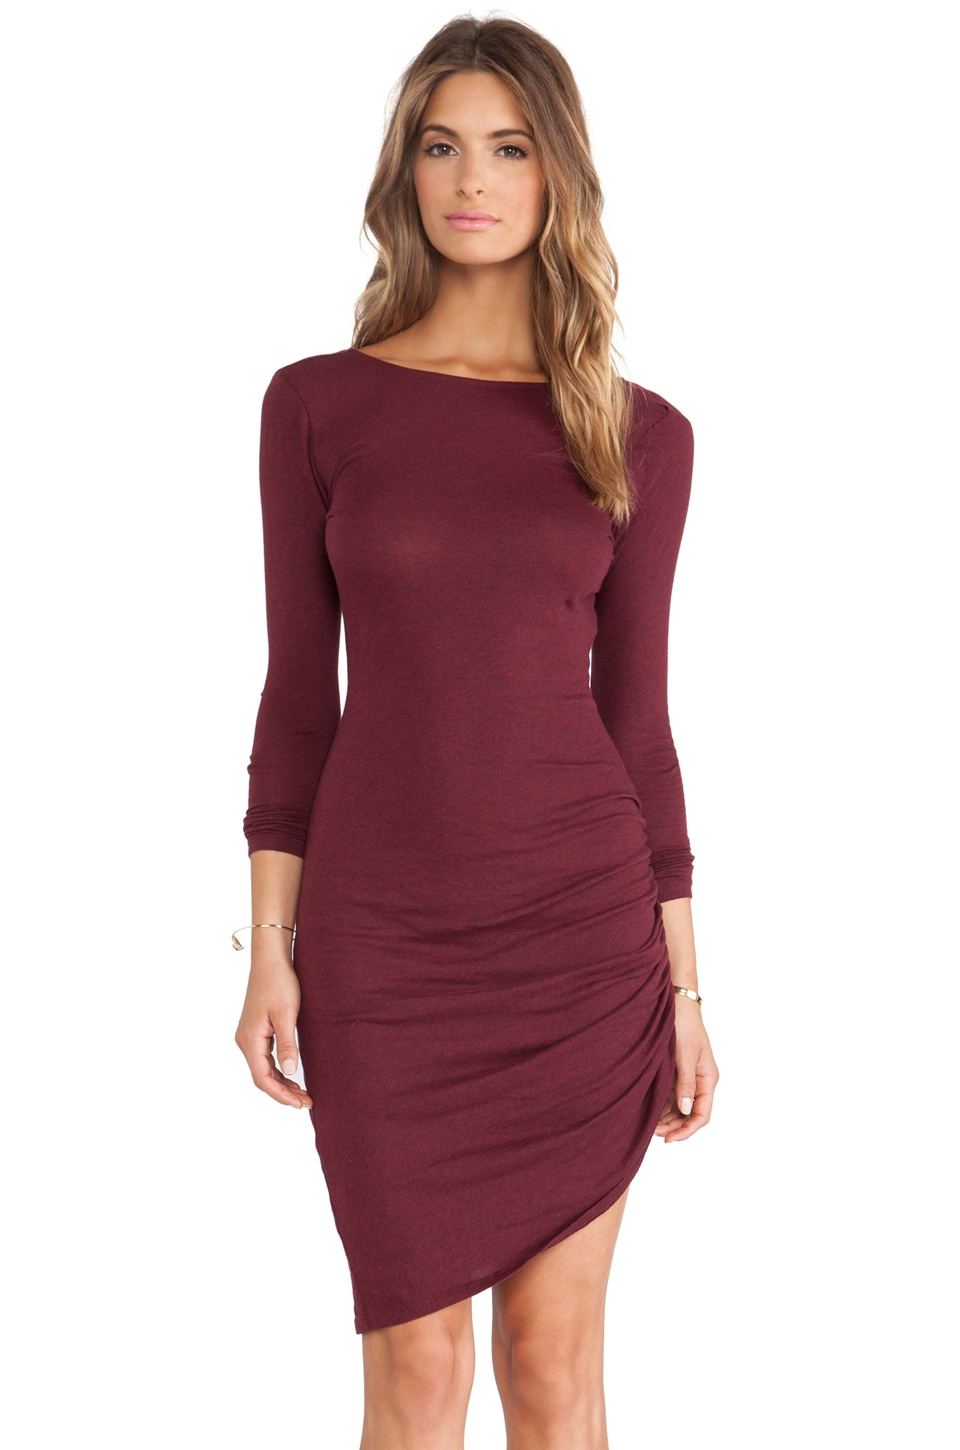 Bobi Light Weight Jersey Asymmetrical Dress in Heather Wine